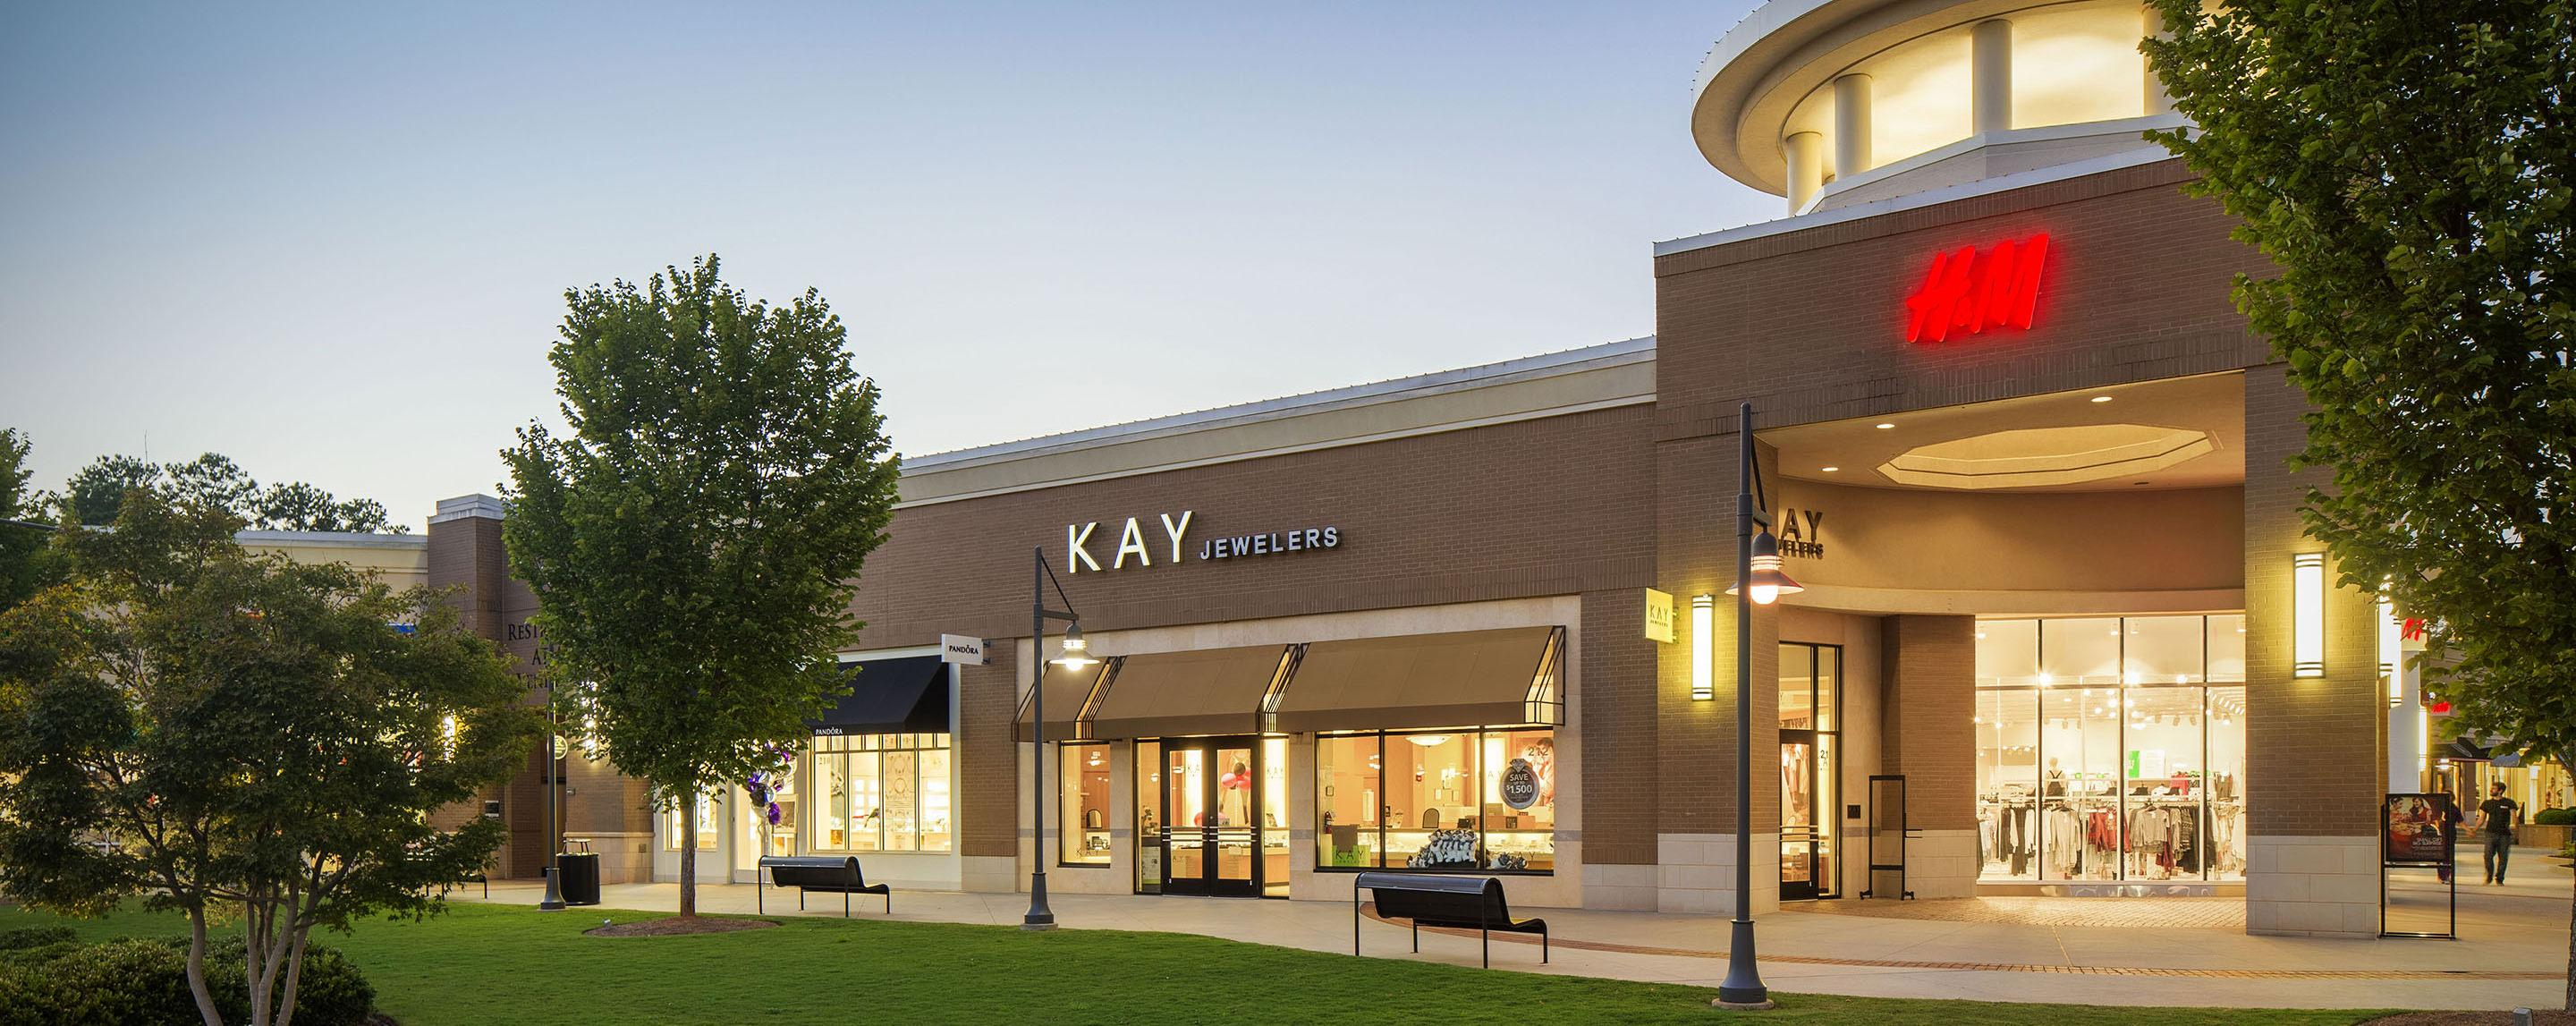 Benches sit on the sidewalk outside of a shopping center with businesses such as Kay Jewelers and H. M.